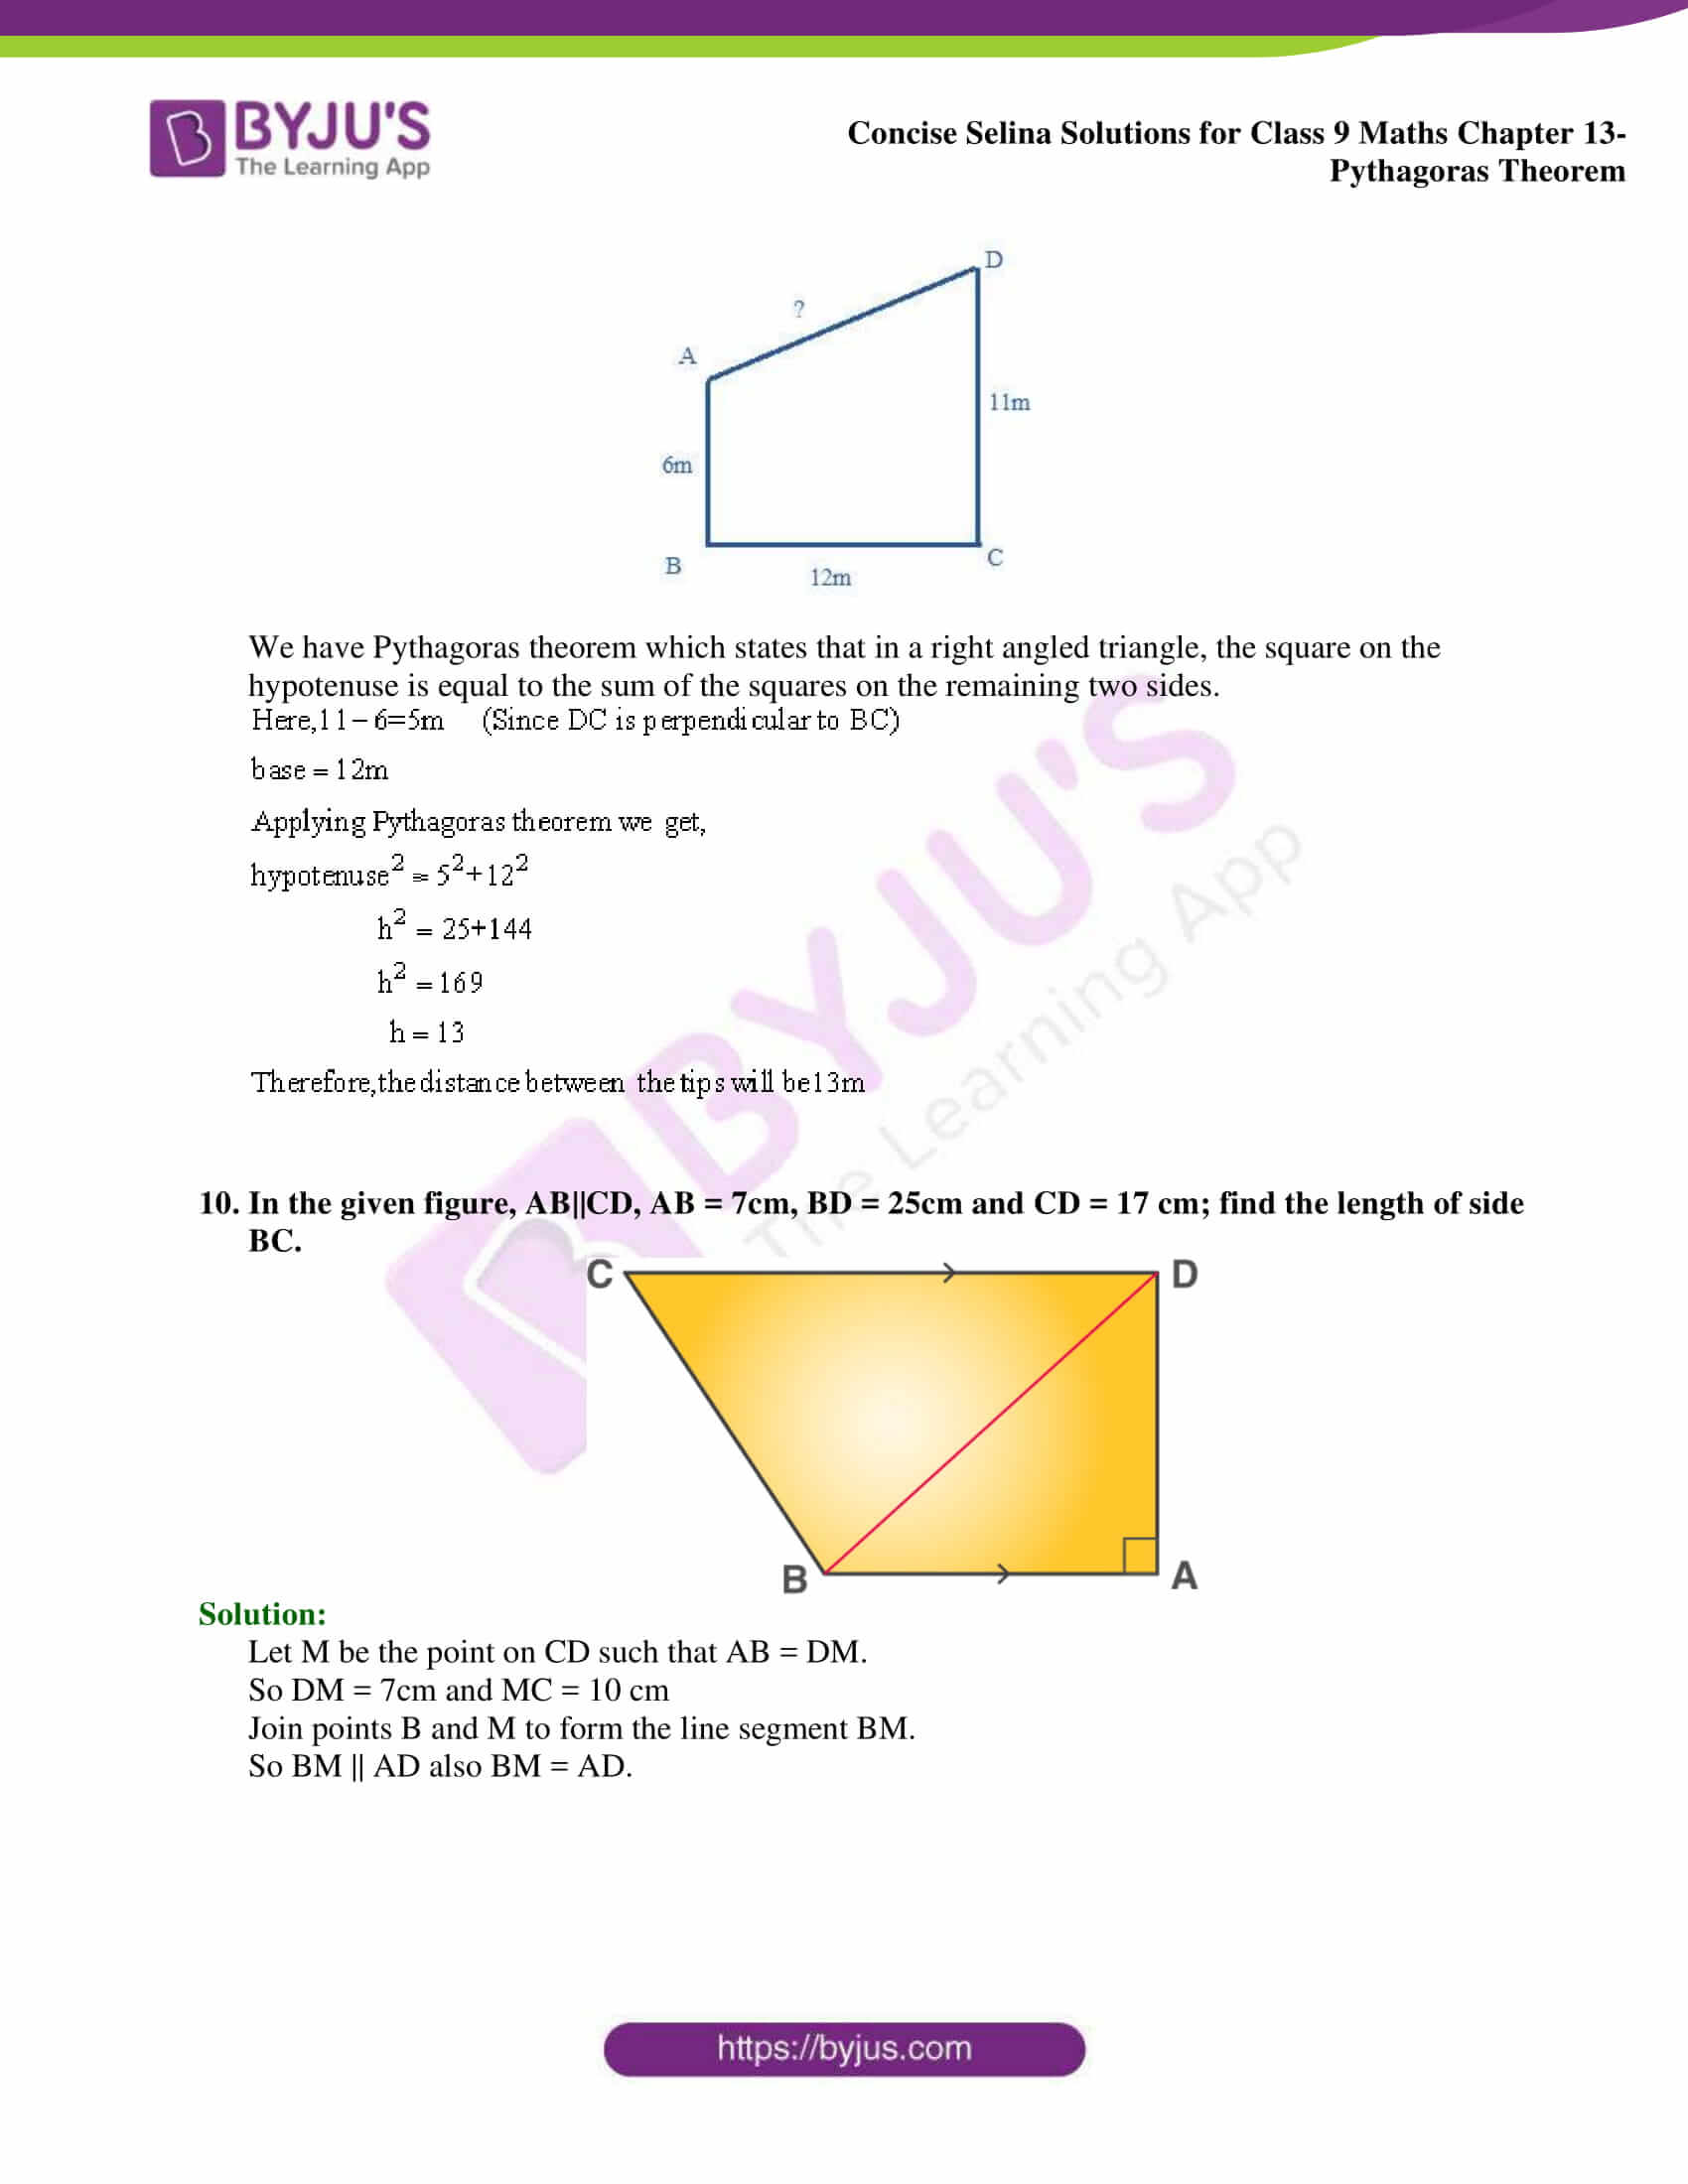 selina Solutions for Class 9 Maths Chapter 13 part 06